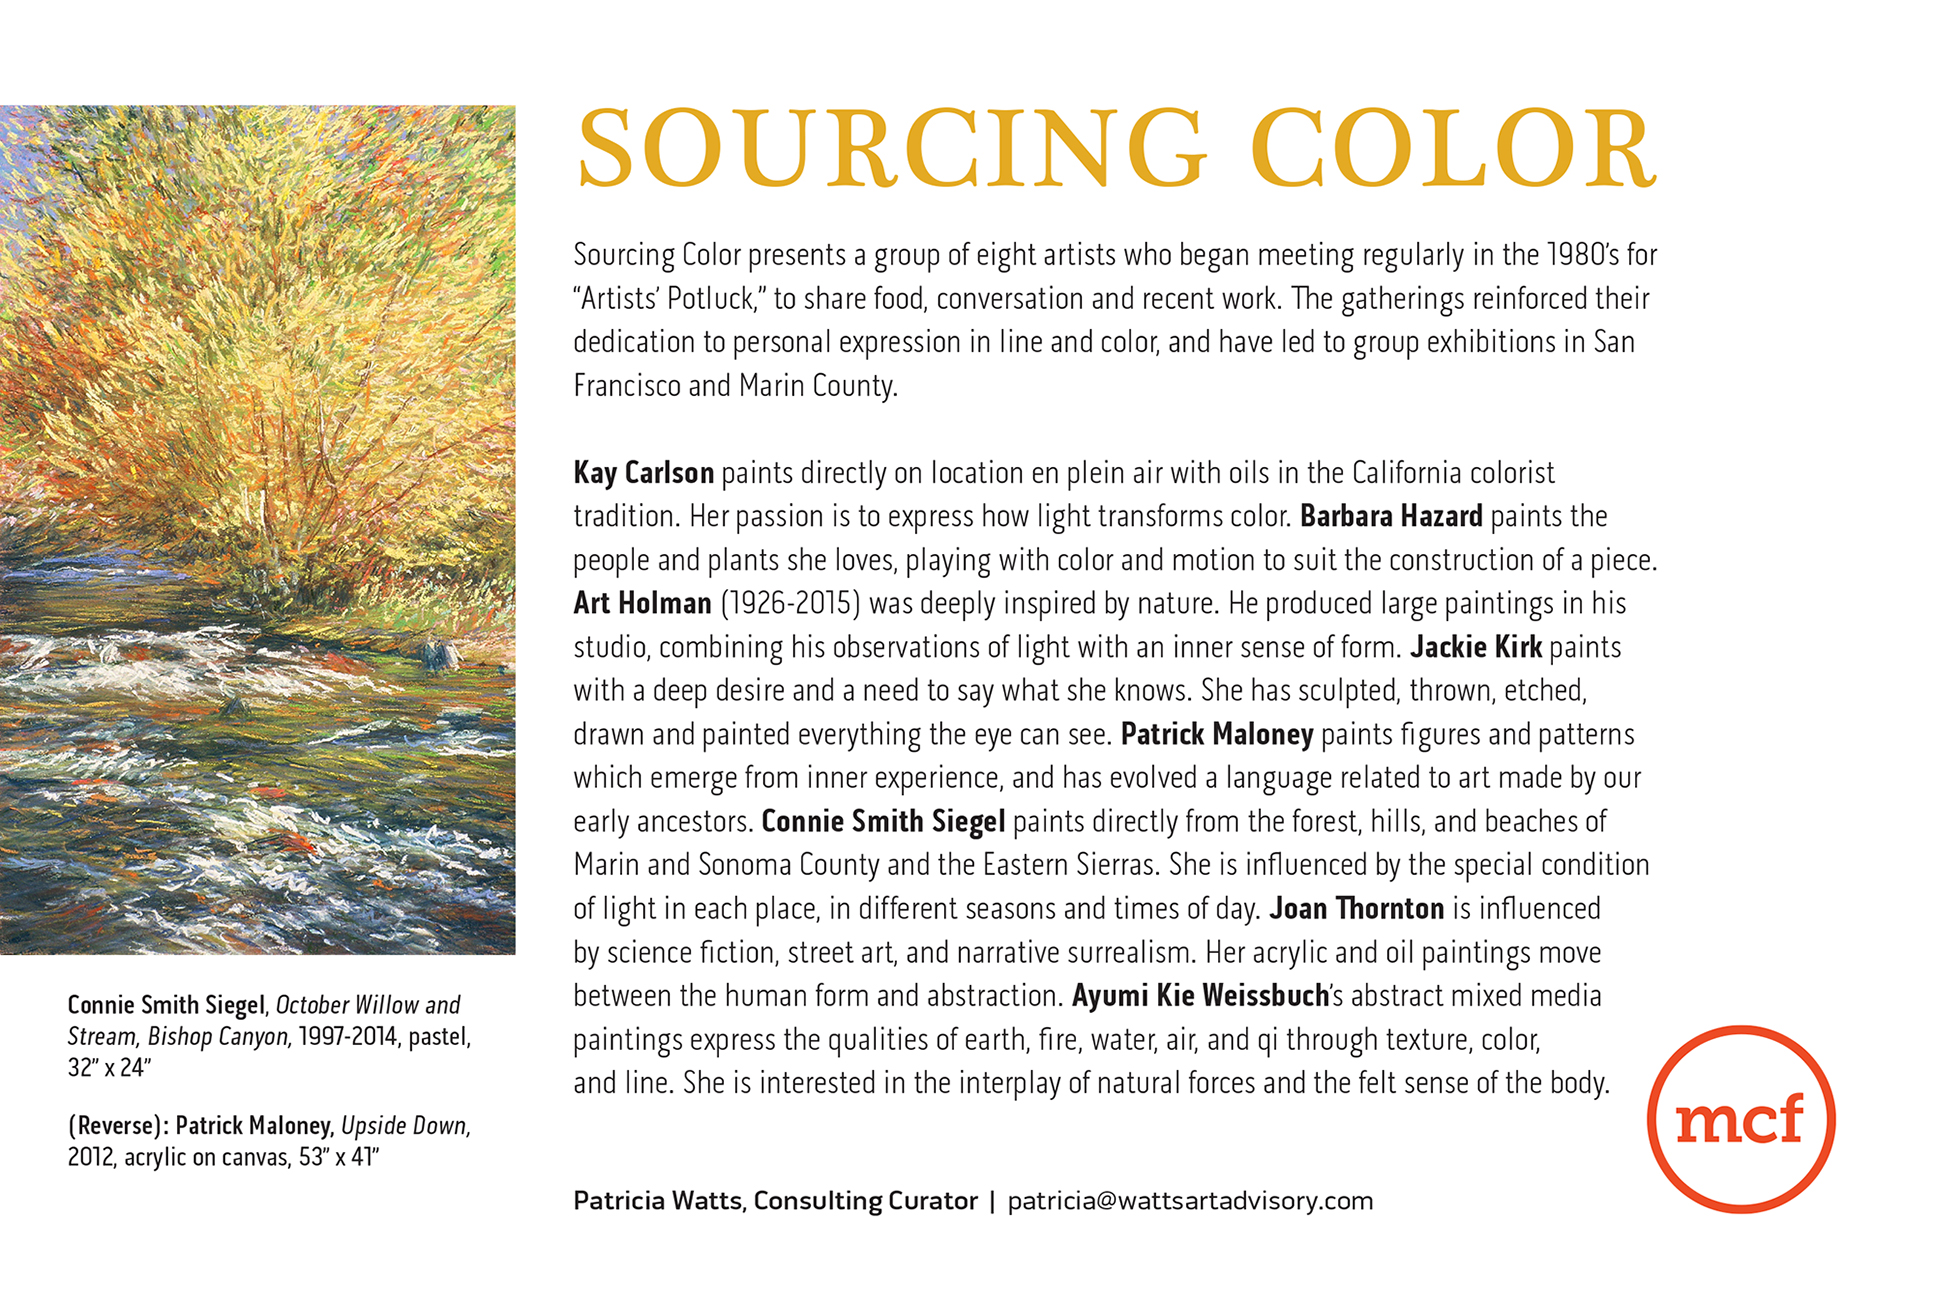 Sourcing Color, Jan 25 to June 9, 2017